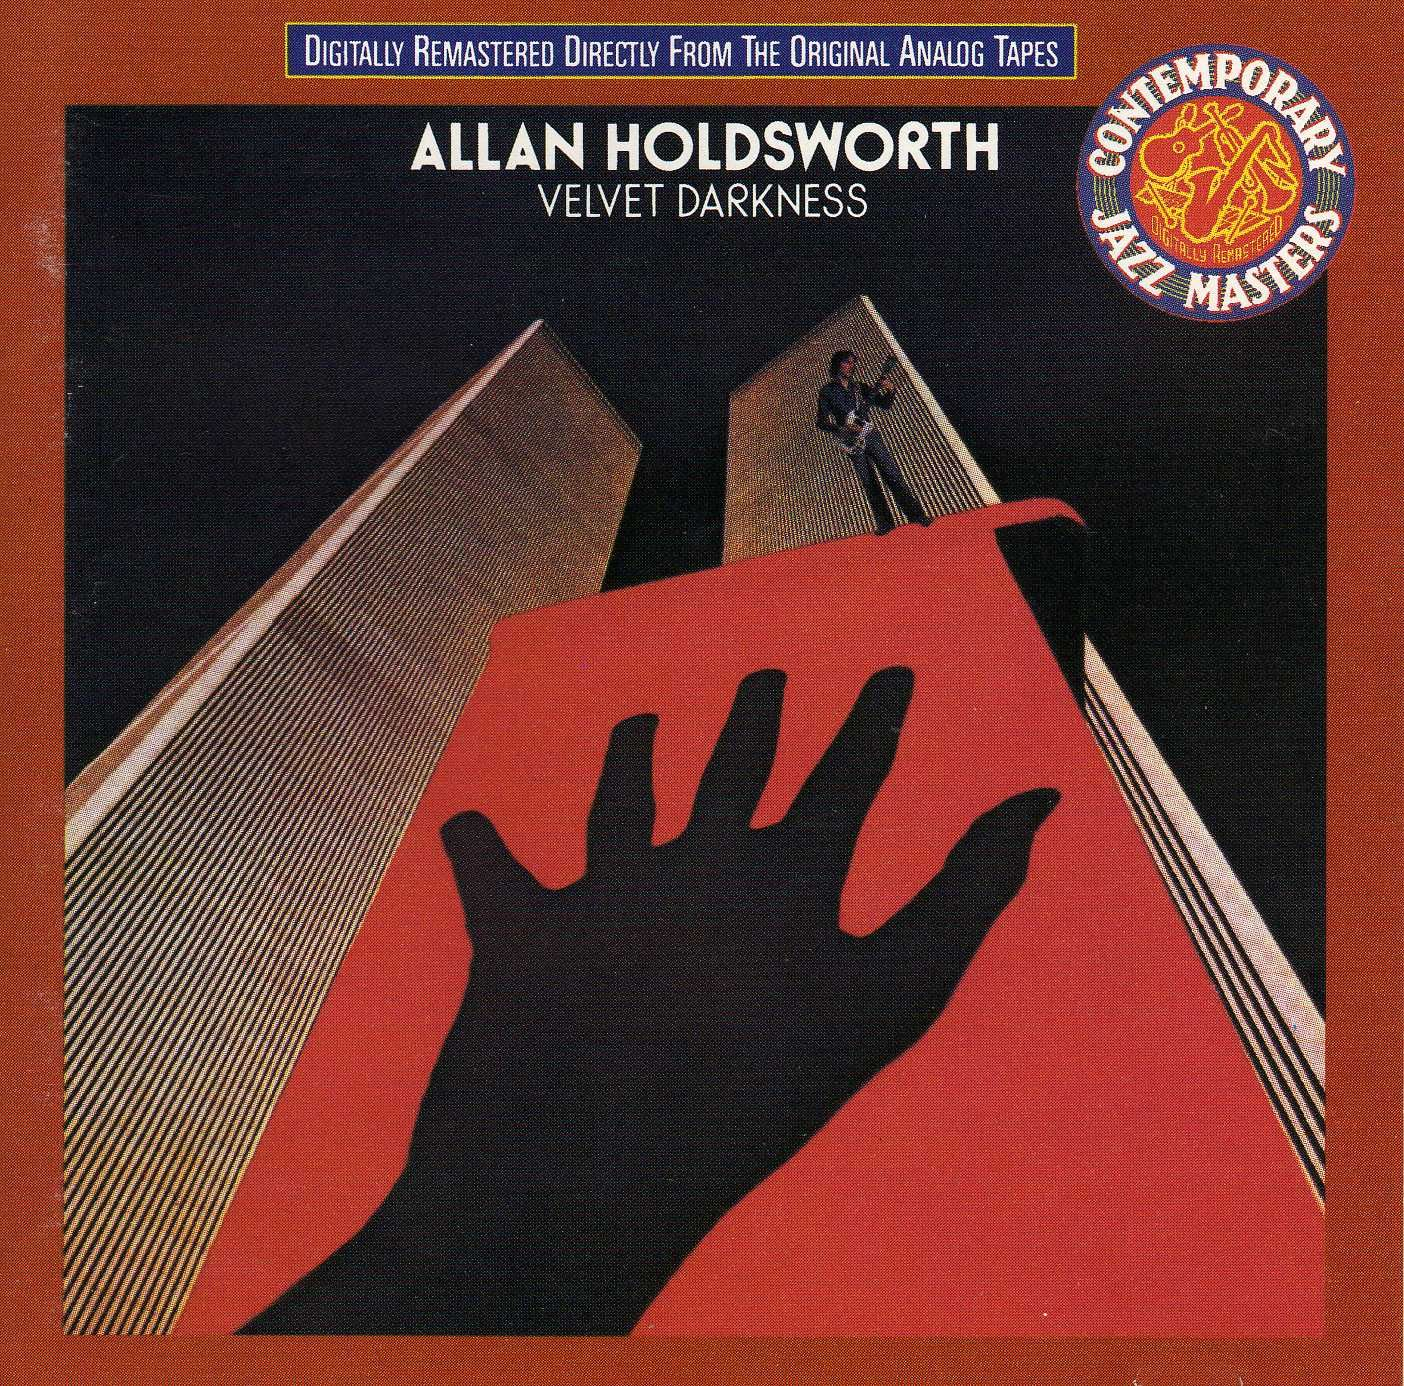 Allan Holdsworth Jazz Rock Fusion Guitar Allan Holdsworth 1976 1990